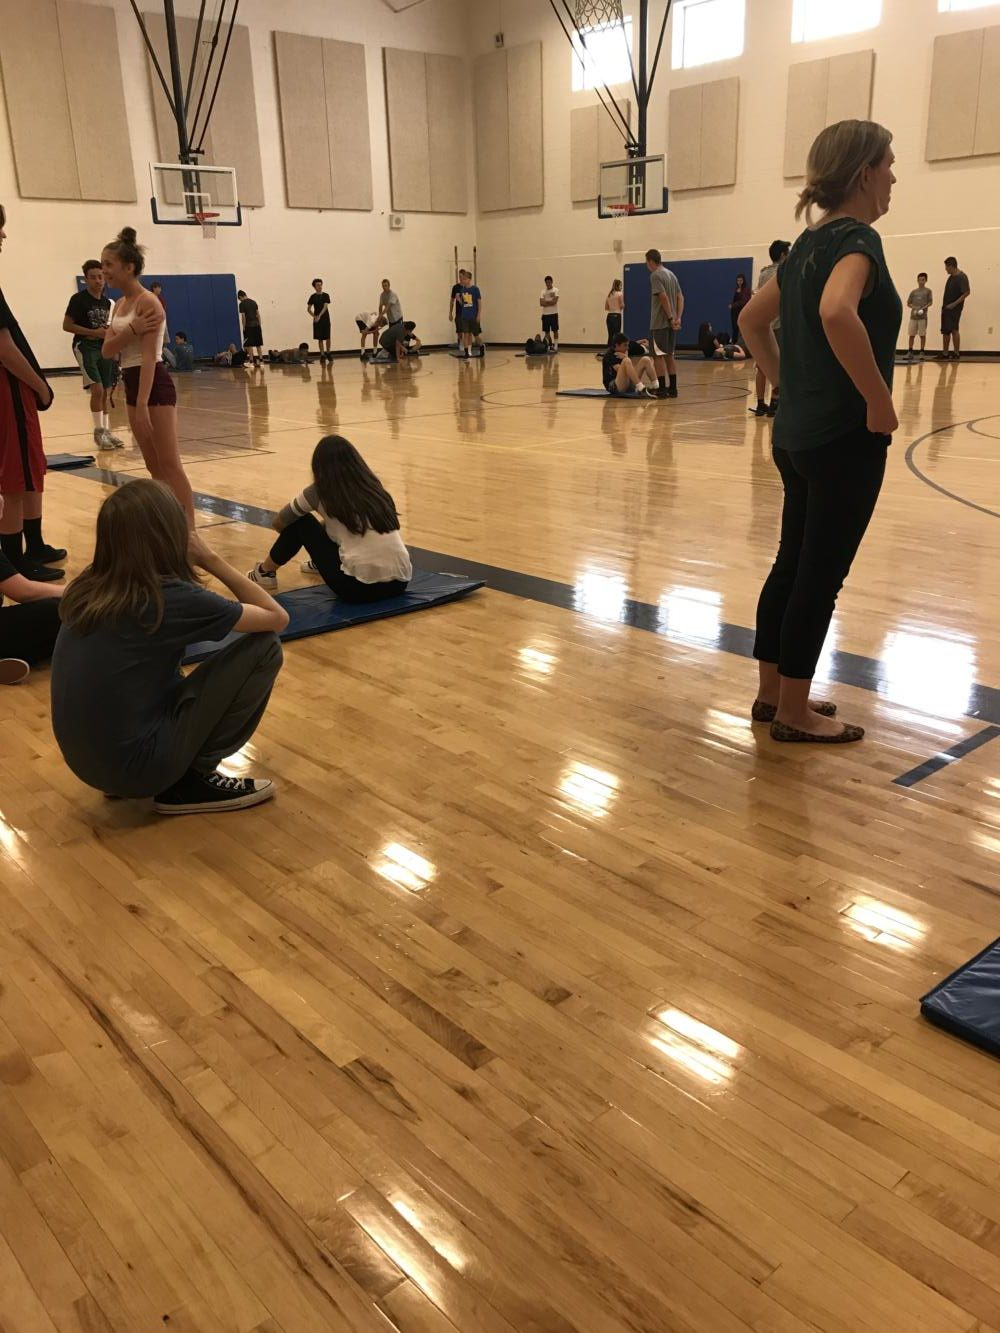 WRHS students doing the sit-ups test in gym class.